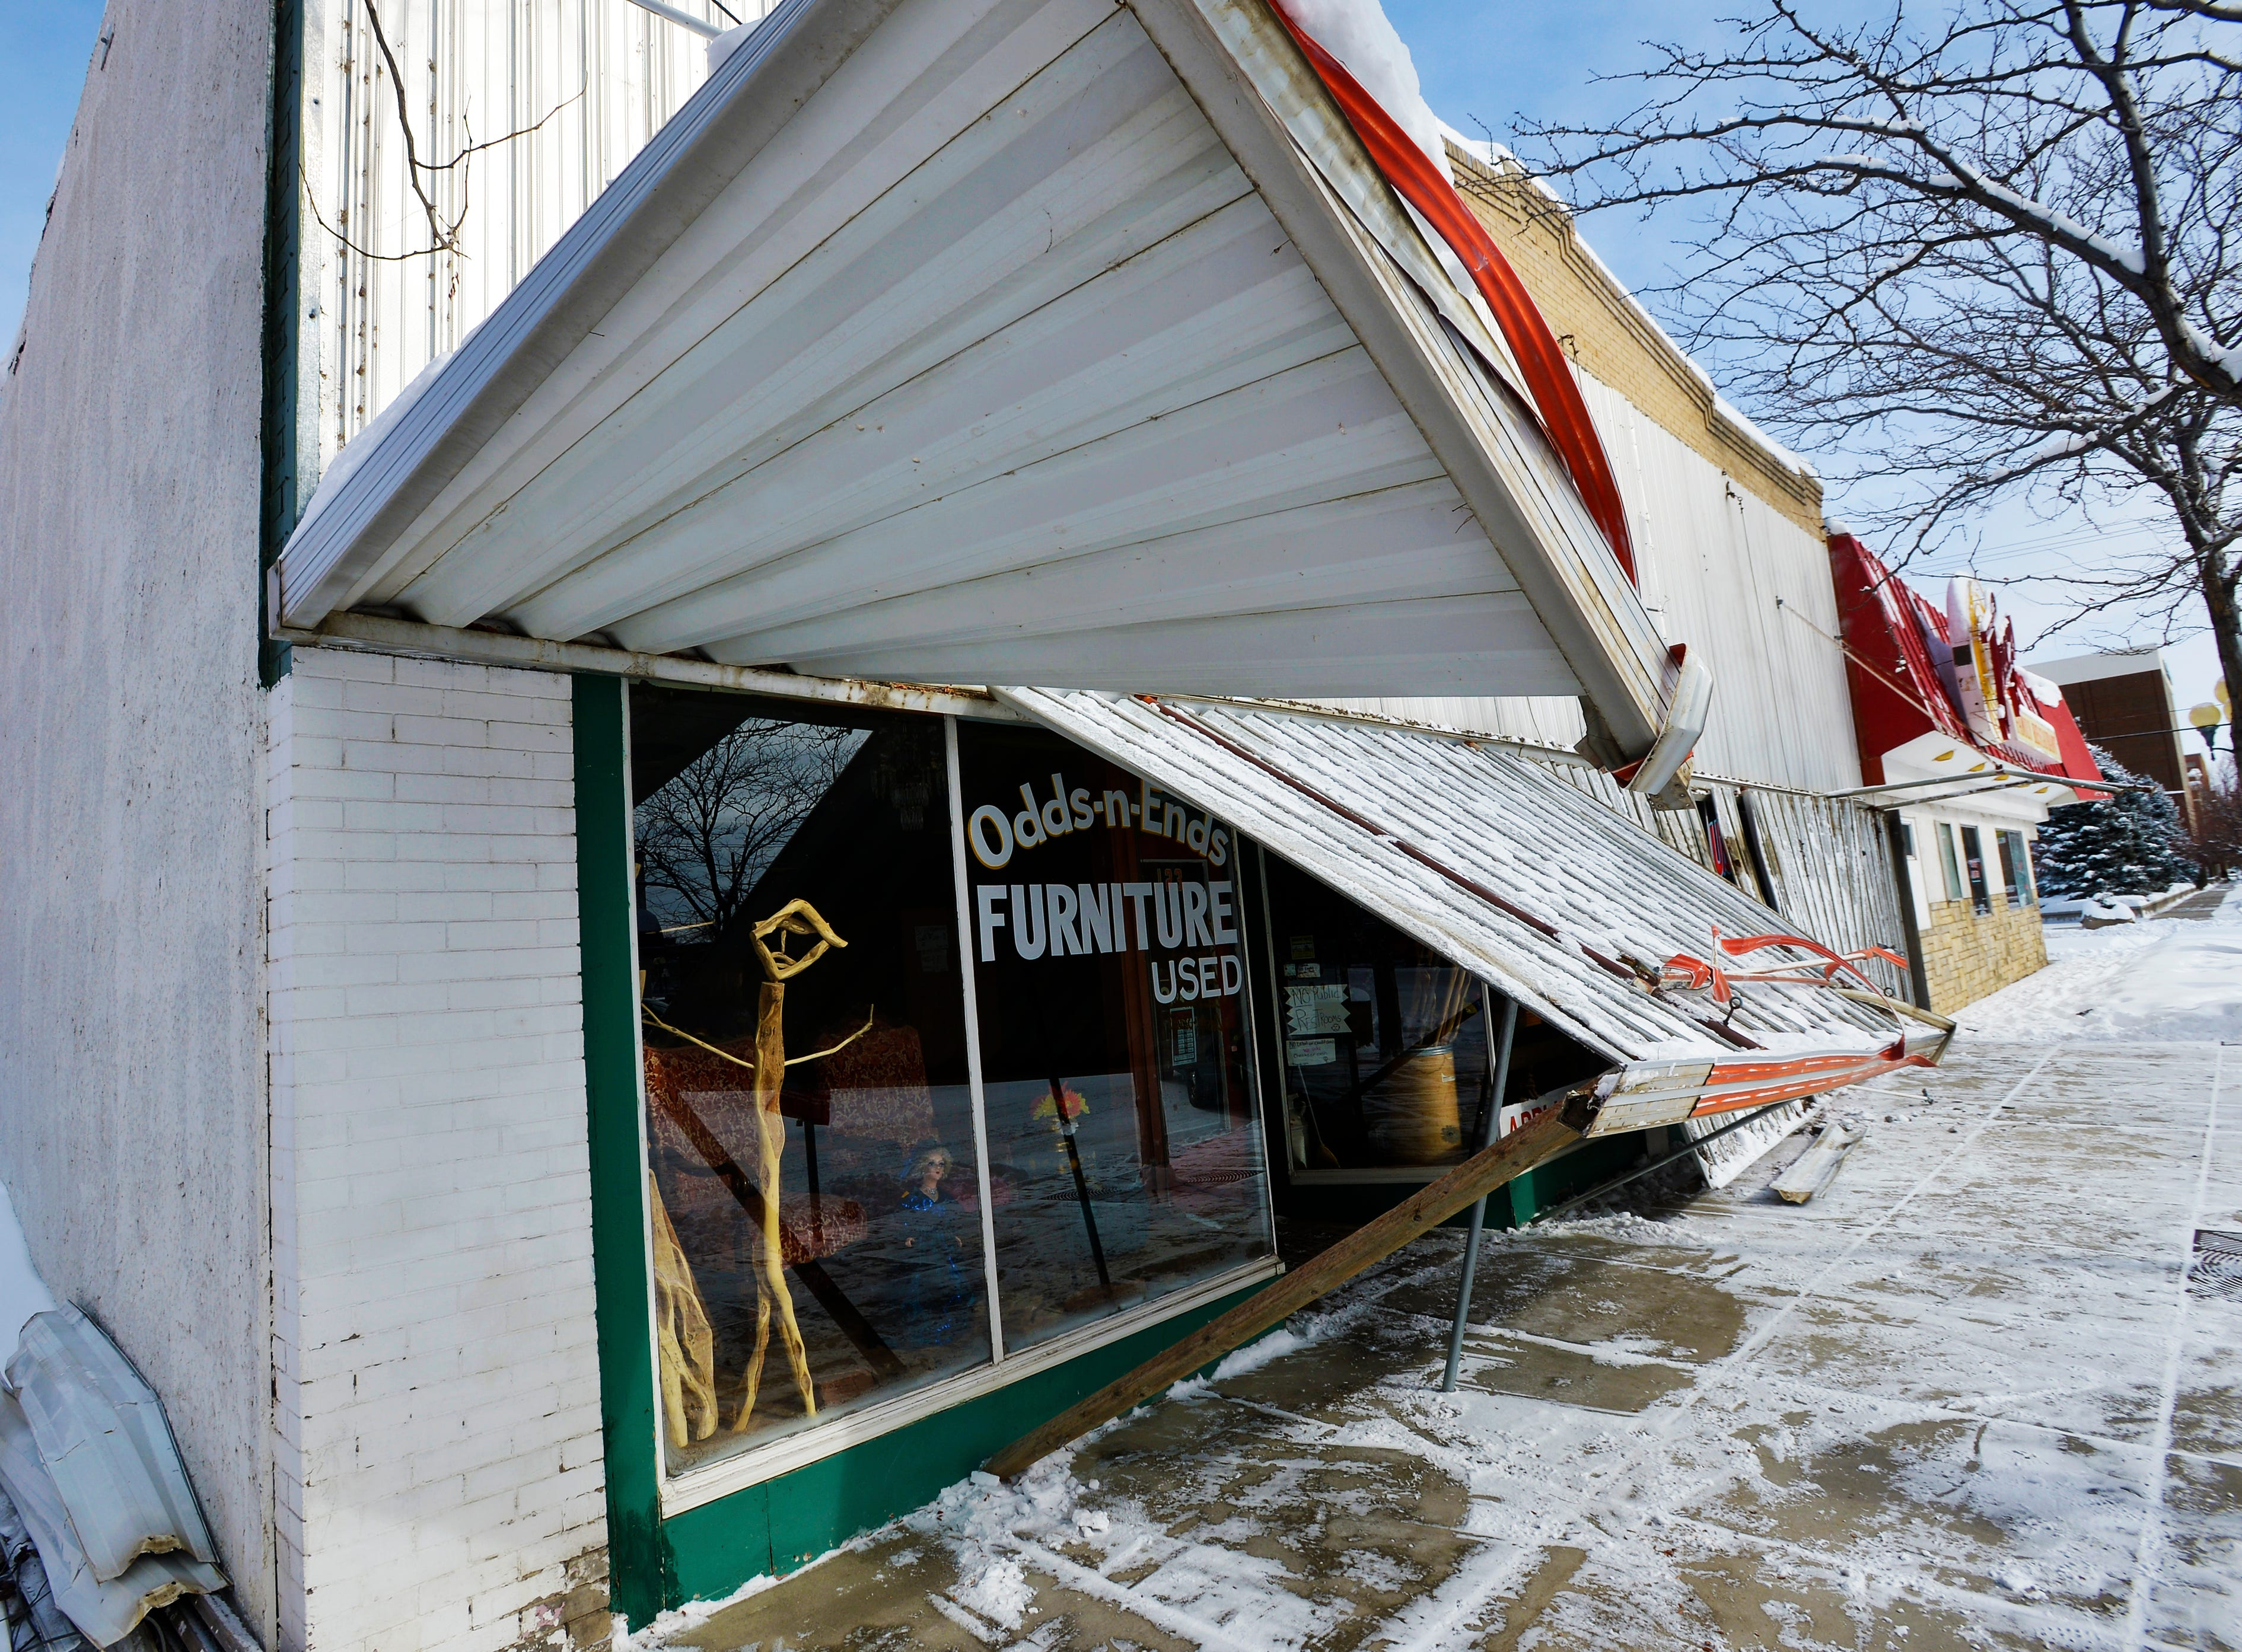 The awning collapsed at Odds-n-Ends furniture store on Central Avenue.